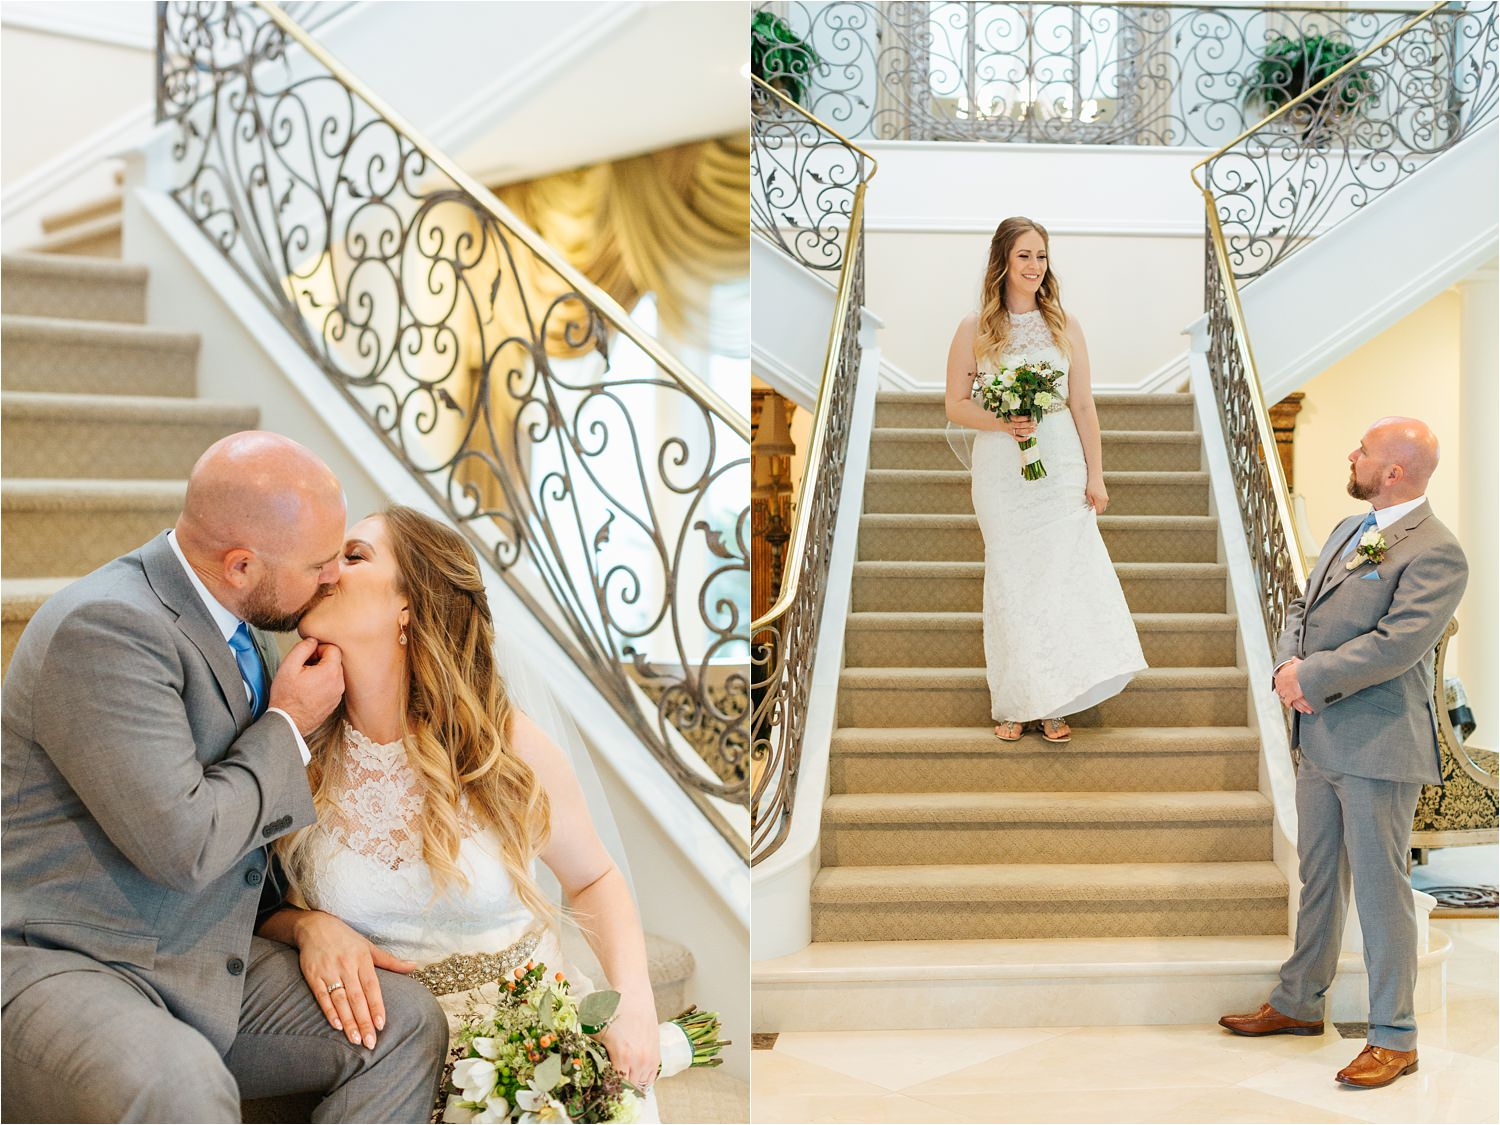 Romantic and Sweet Bride and Groom Pictures - https://brittneyhannonphotography.com